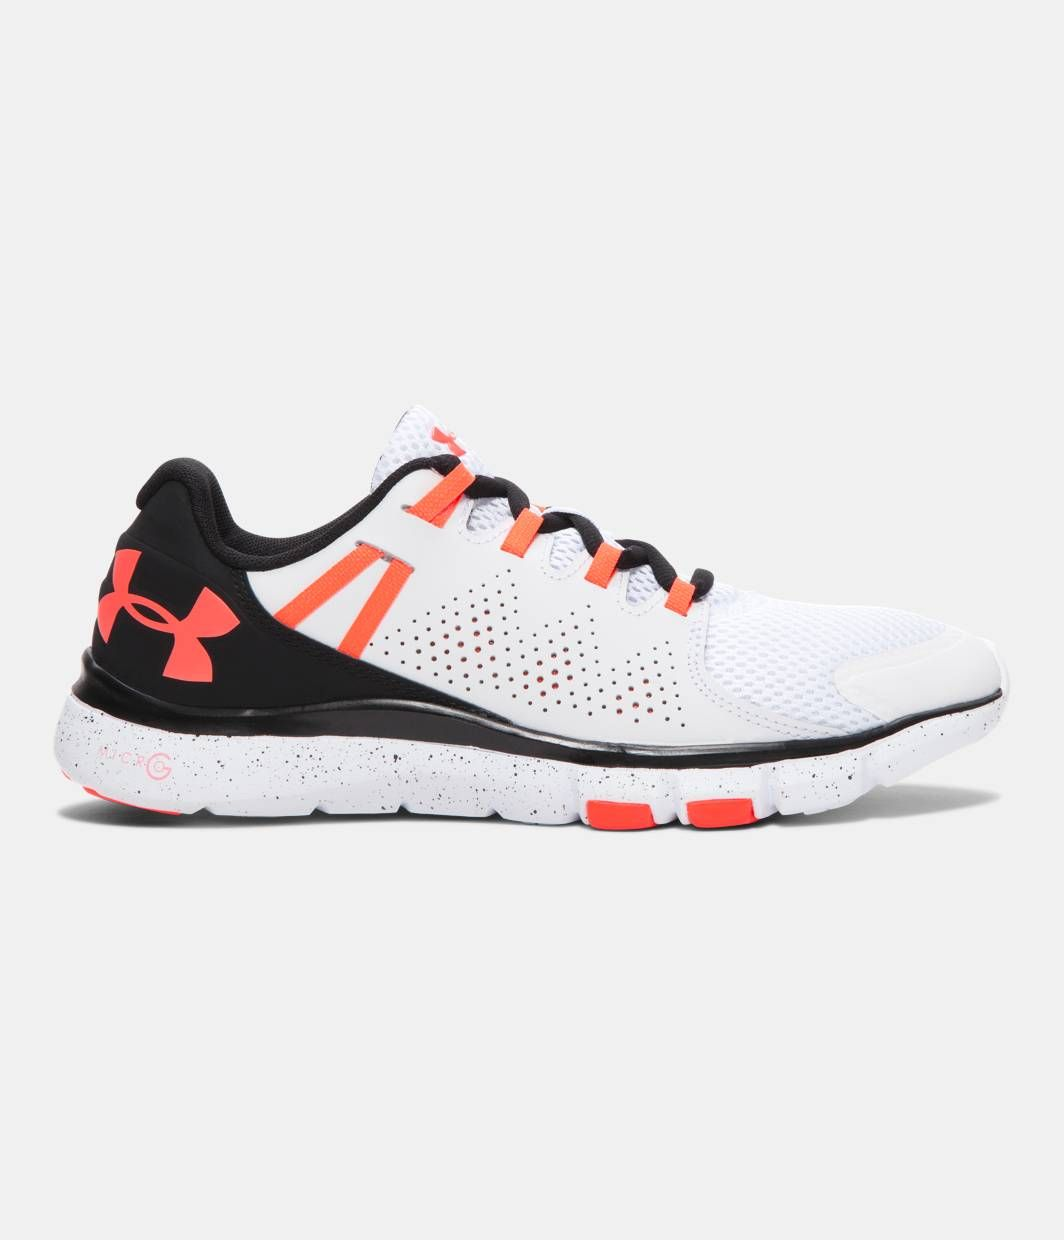 quality design b16d9 5b85d Shop Under Armour for Women s UA Micro G® Limitless Training Shoes in our  Womens Sneakers department. Free shipping is available in US.